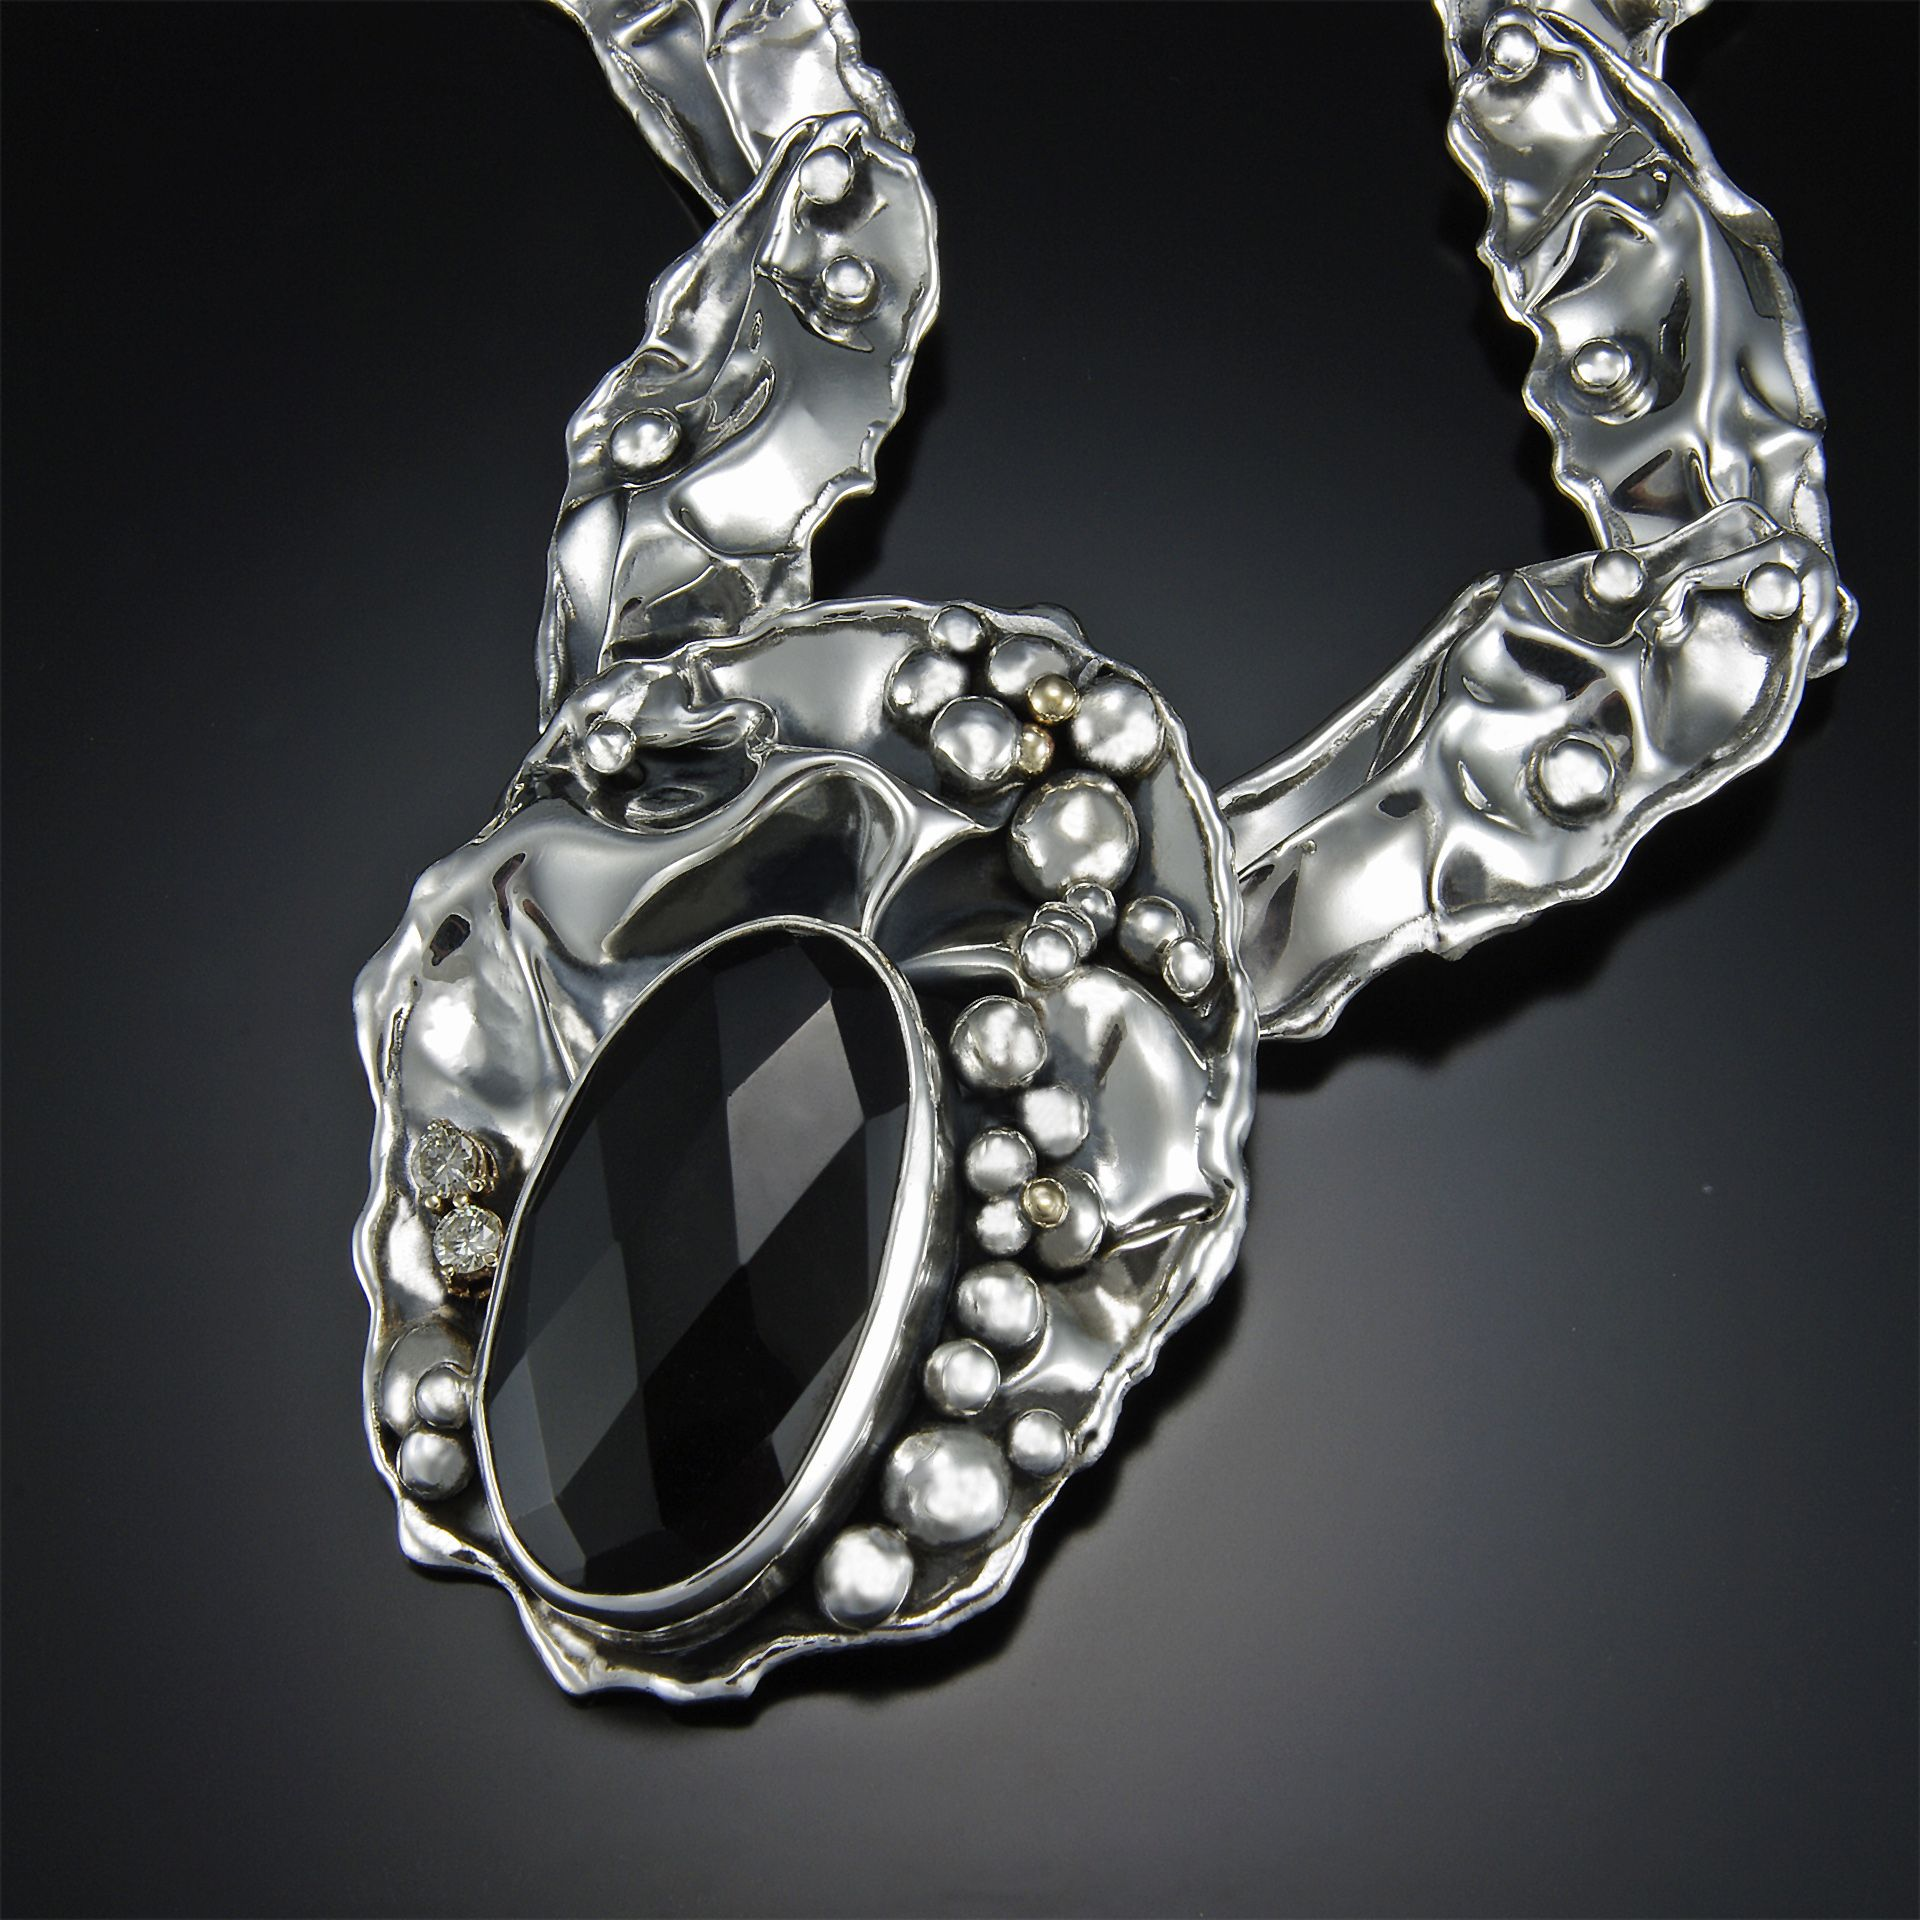 Midnight.   48ct Midnight Smoky Topaz in hand fabricated sterling silver necklace.